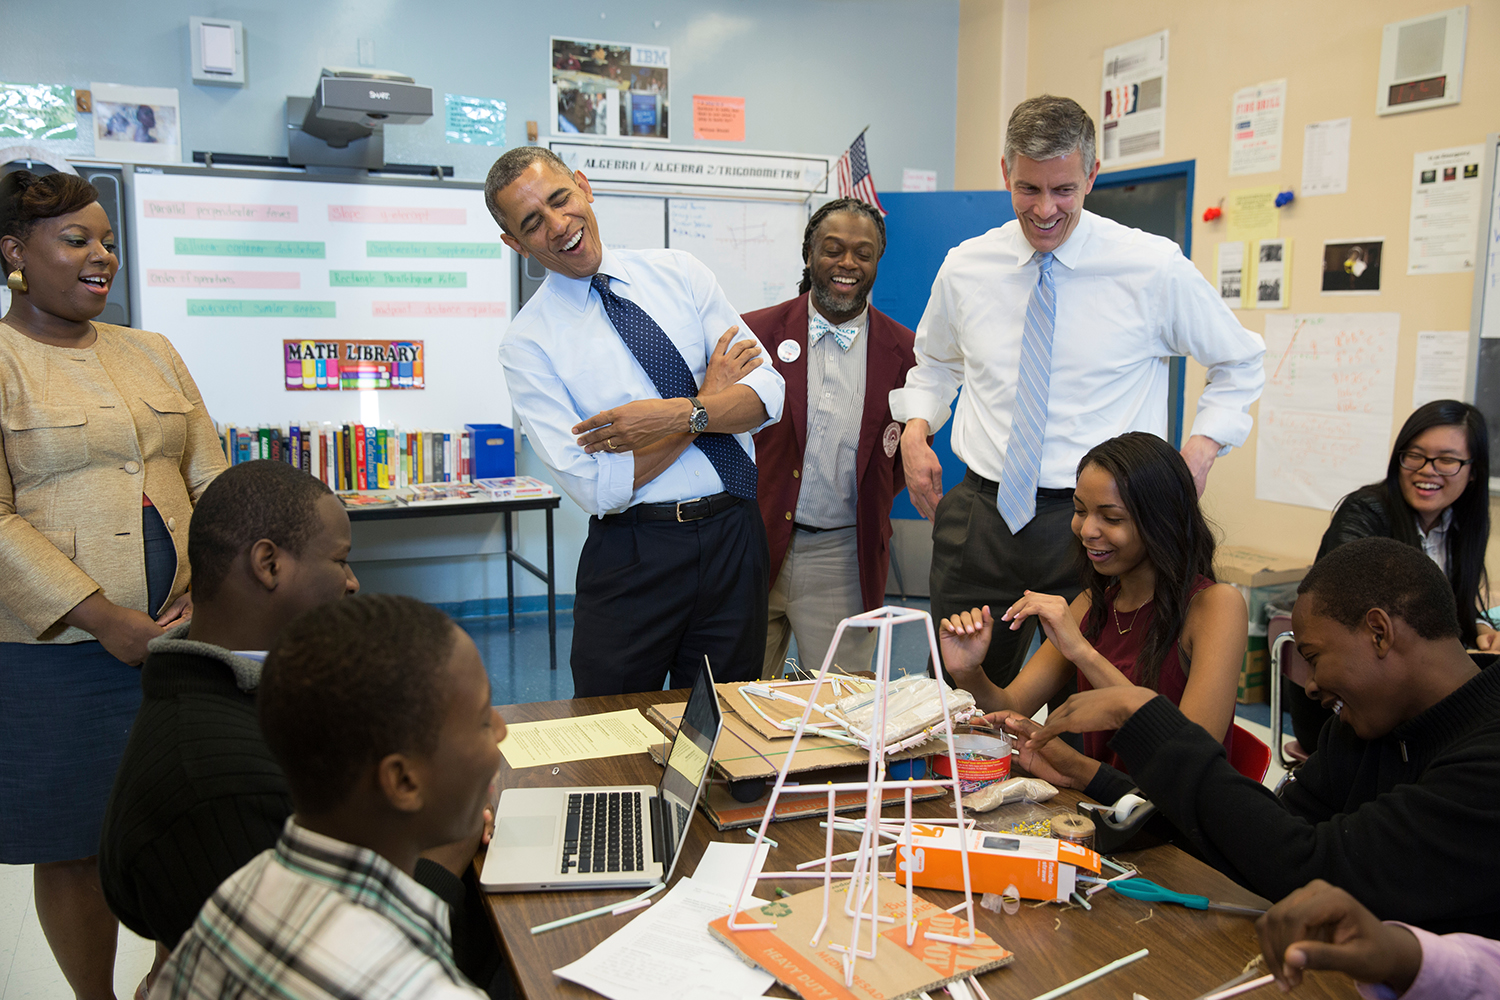 Photo: President Barack Obama and Education Secretary Arne Duncan visit a classroom